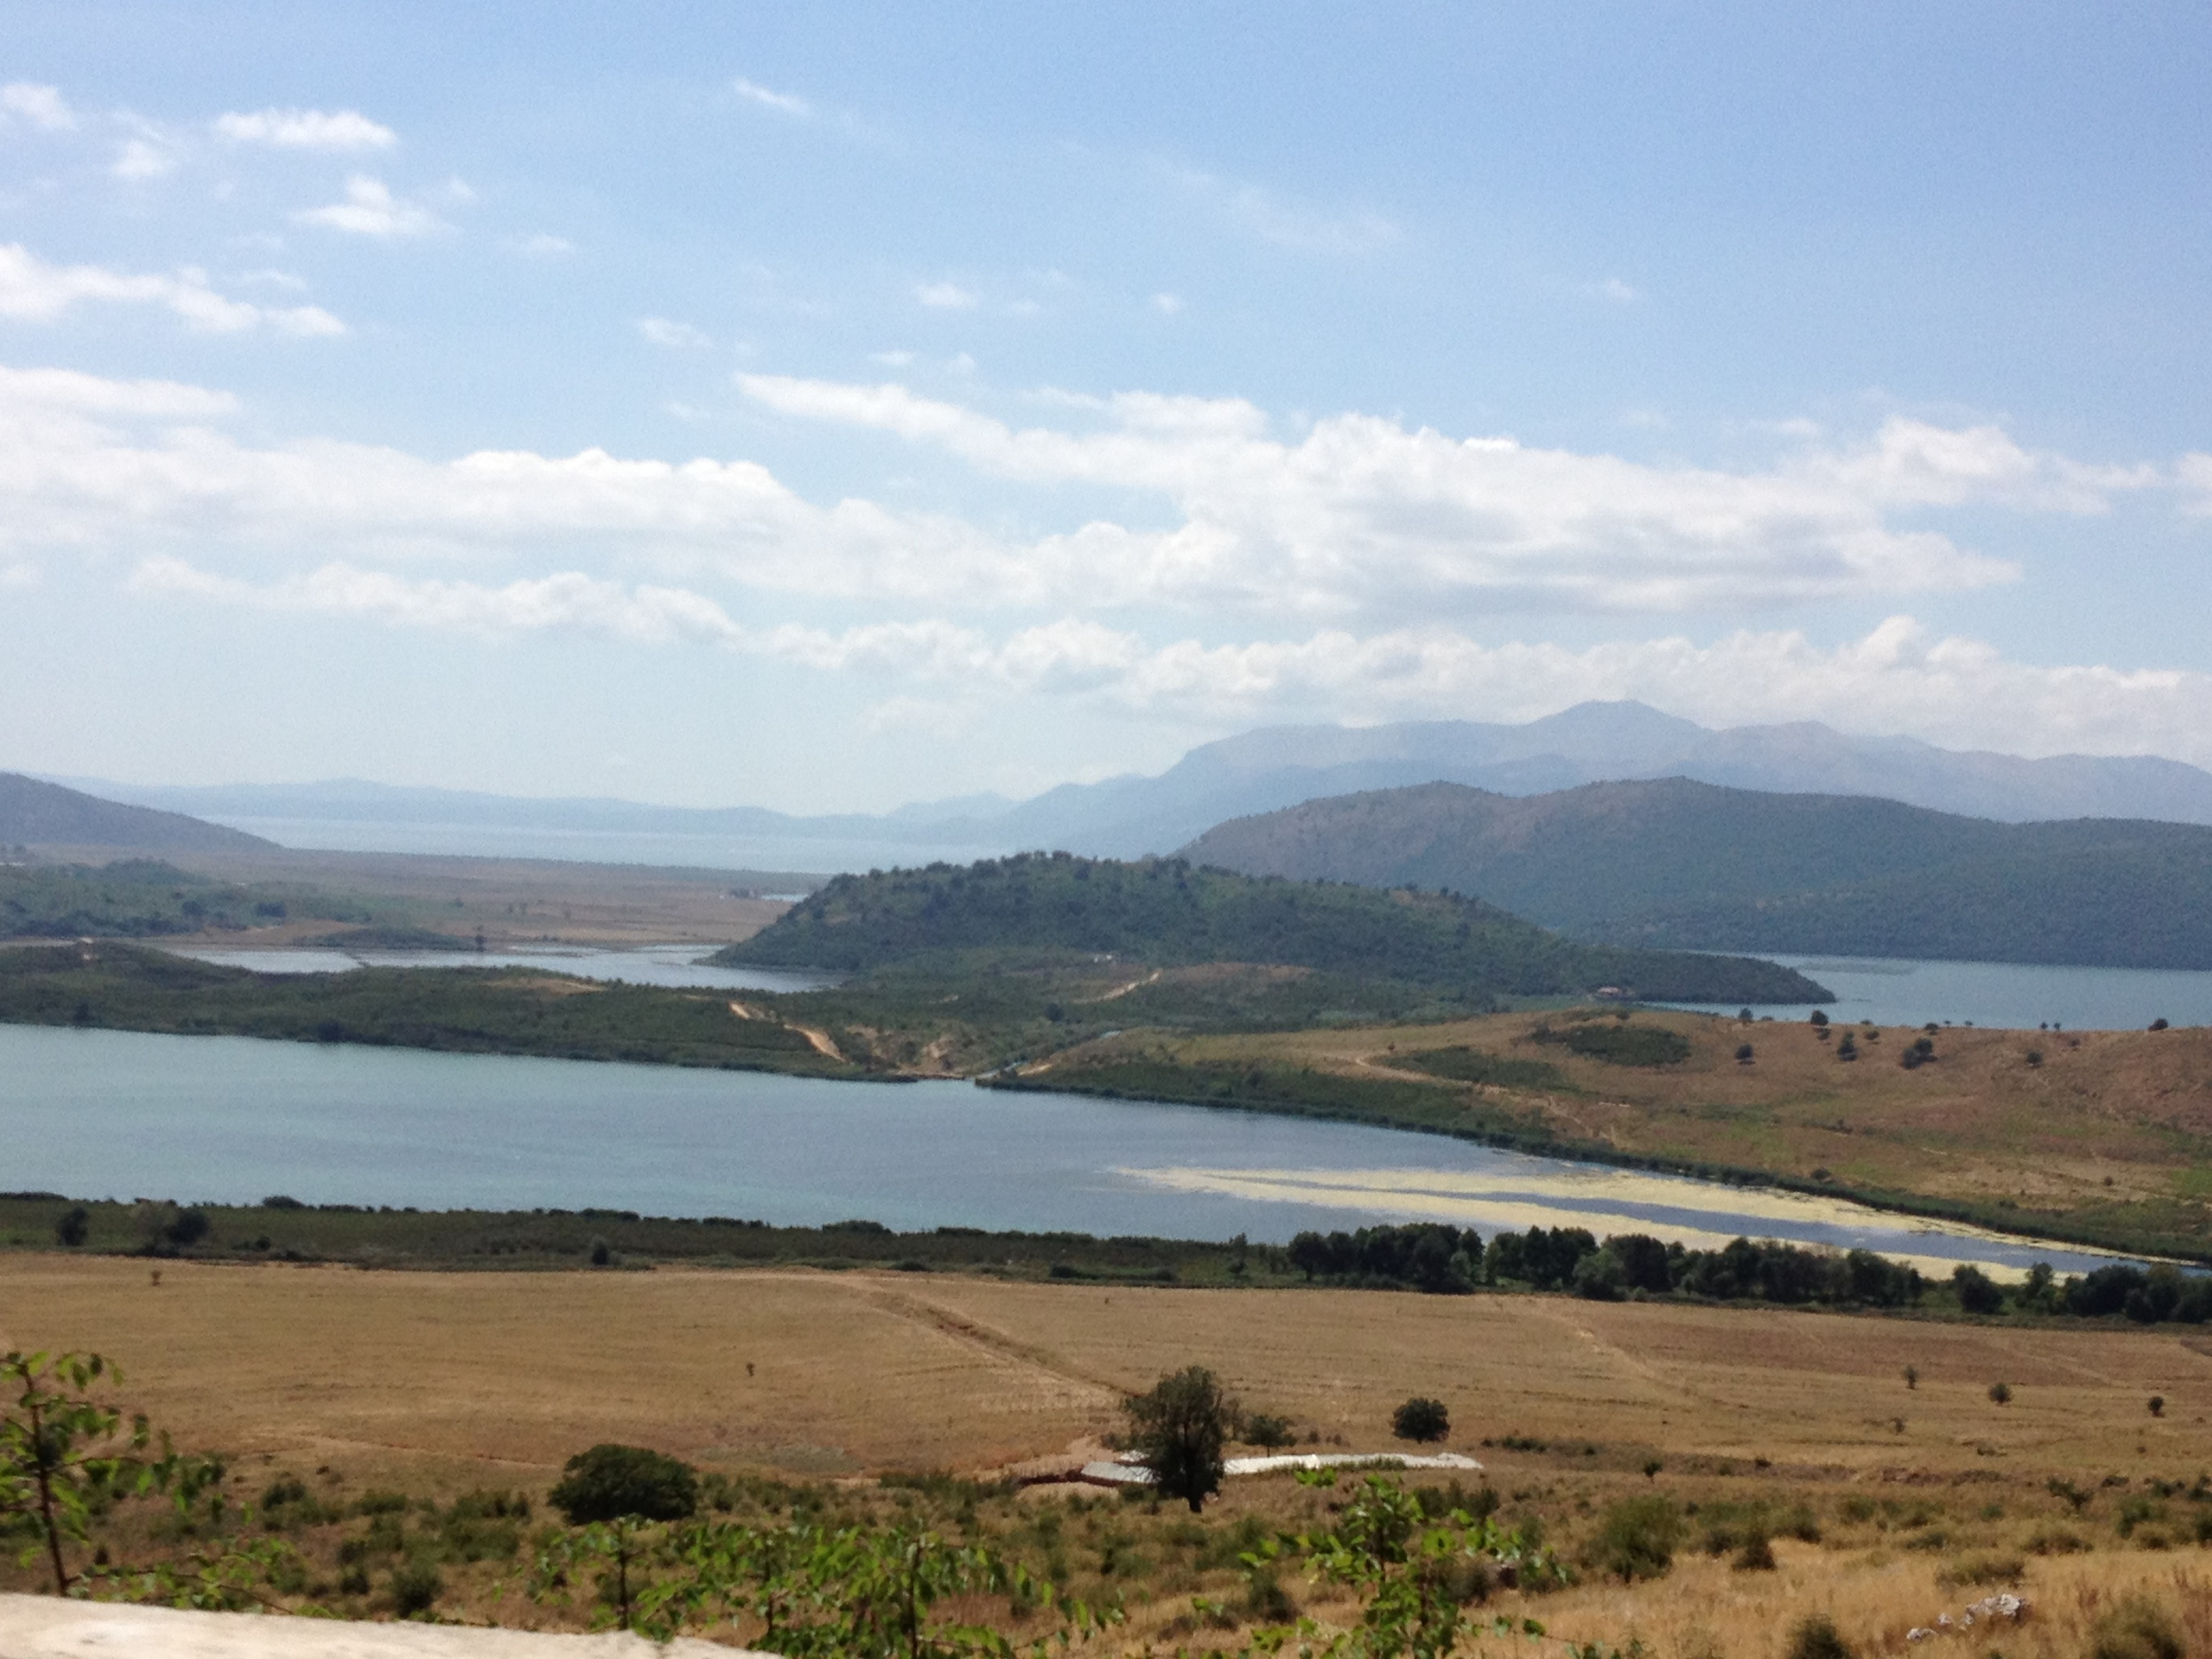 Approaching the site of Butrint from the east